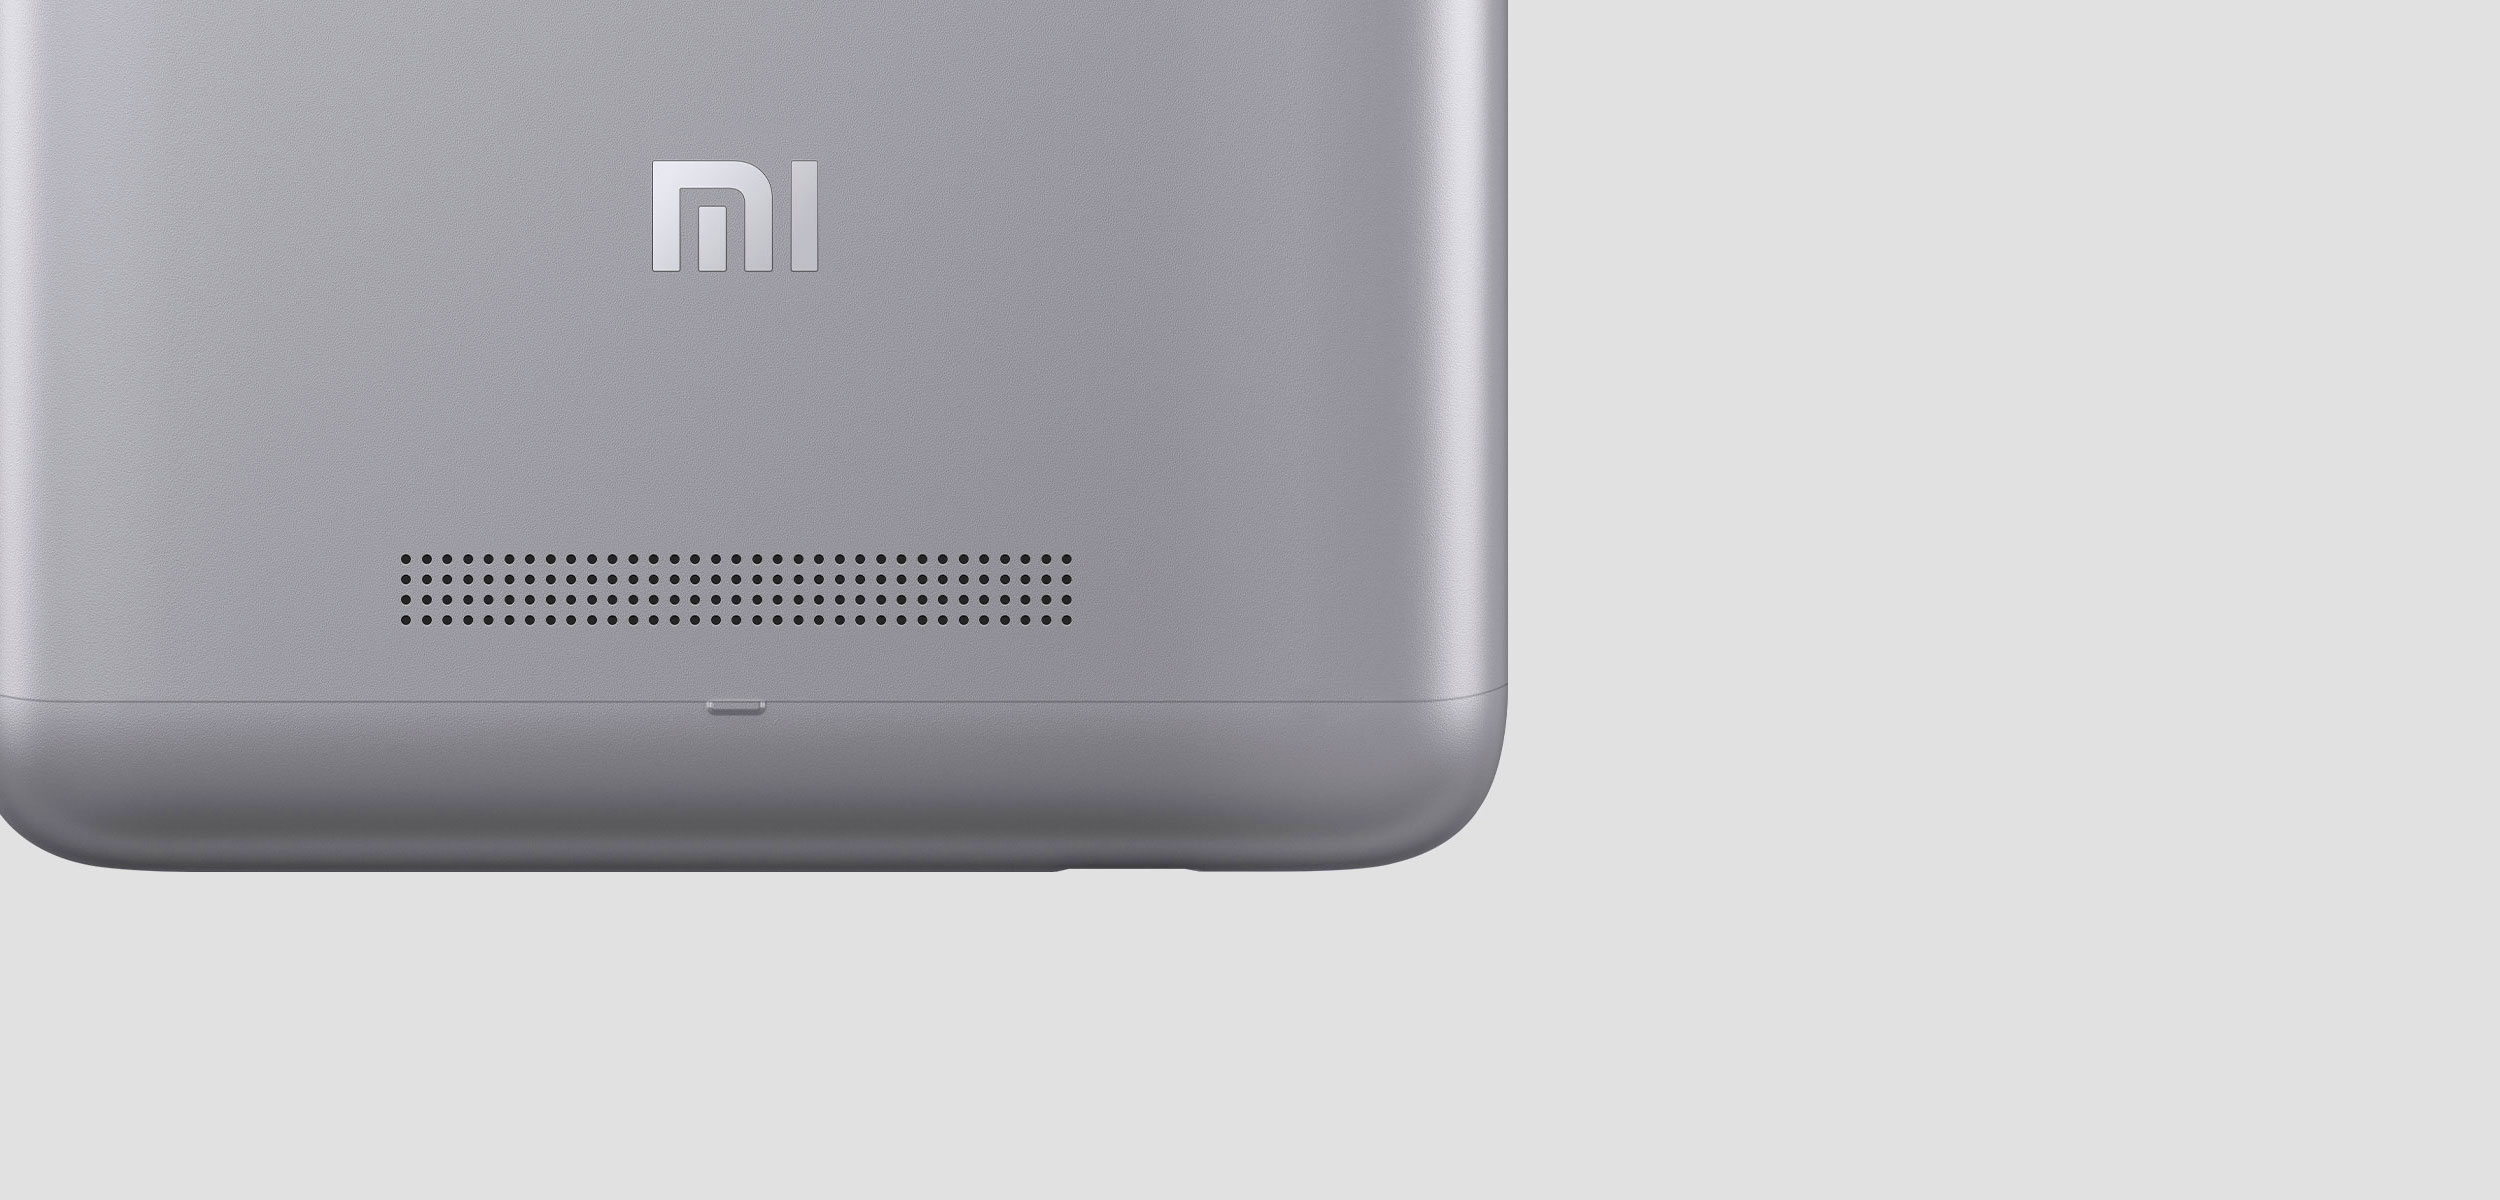 Xiaomi Redmi Note 3 2gb 16gb Dual Sim Silver Full Specifications Ram 4g Lte Helio X10 Octa Core During Designing Of We Turn Our Attention To Every Detail Especially A Lot Was Paid The Welding Seams Metal Casing